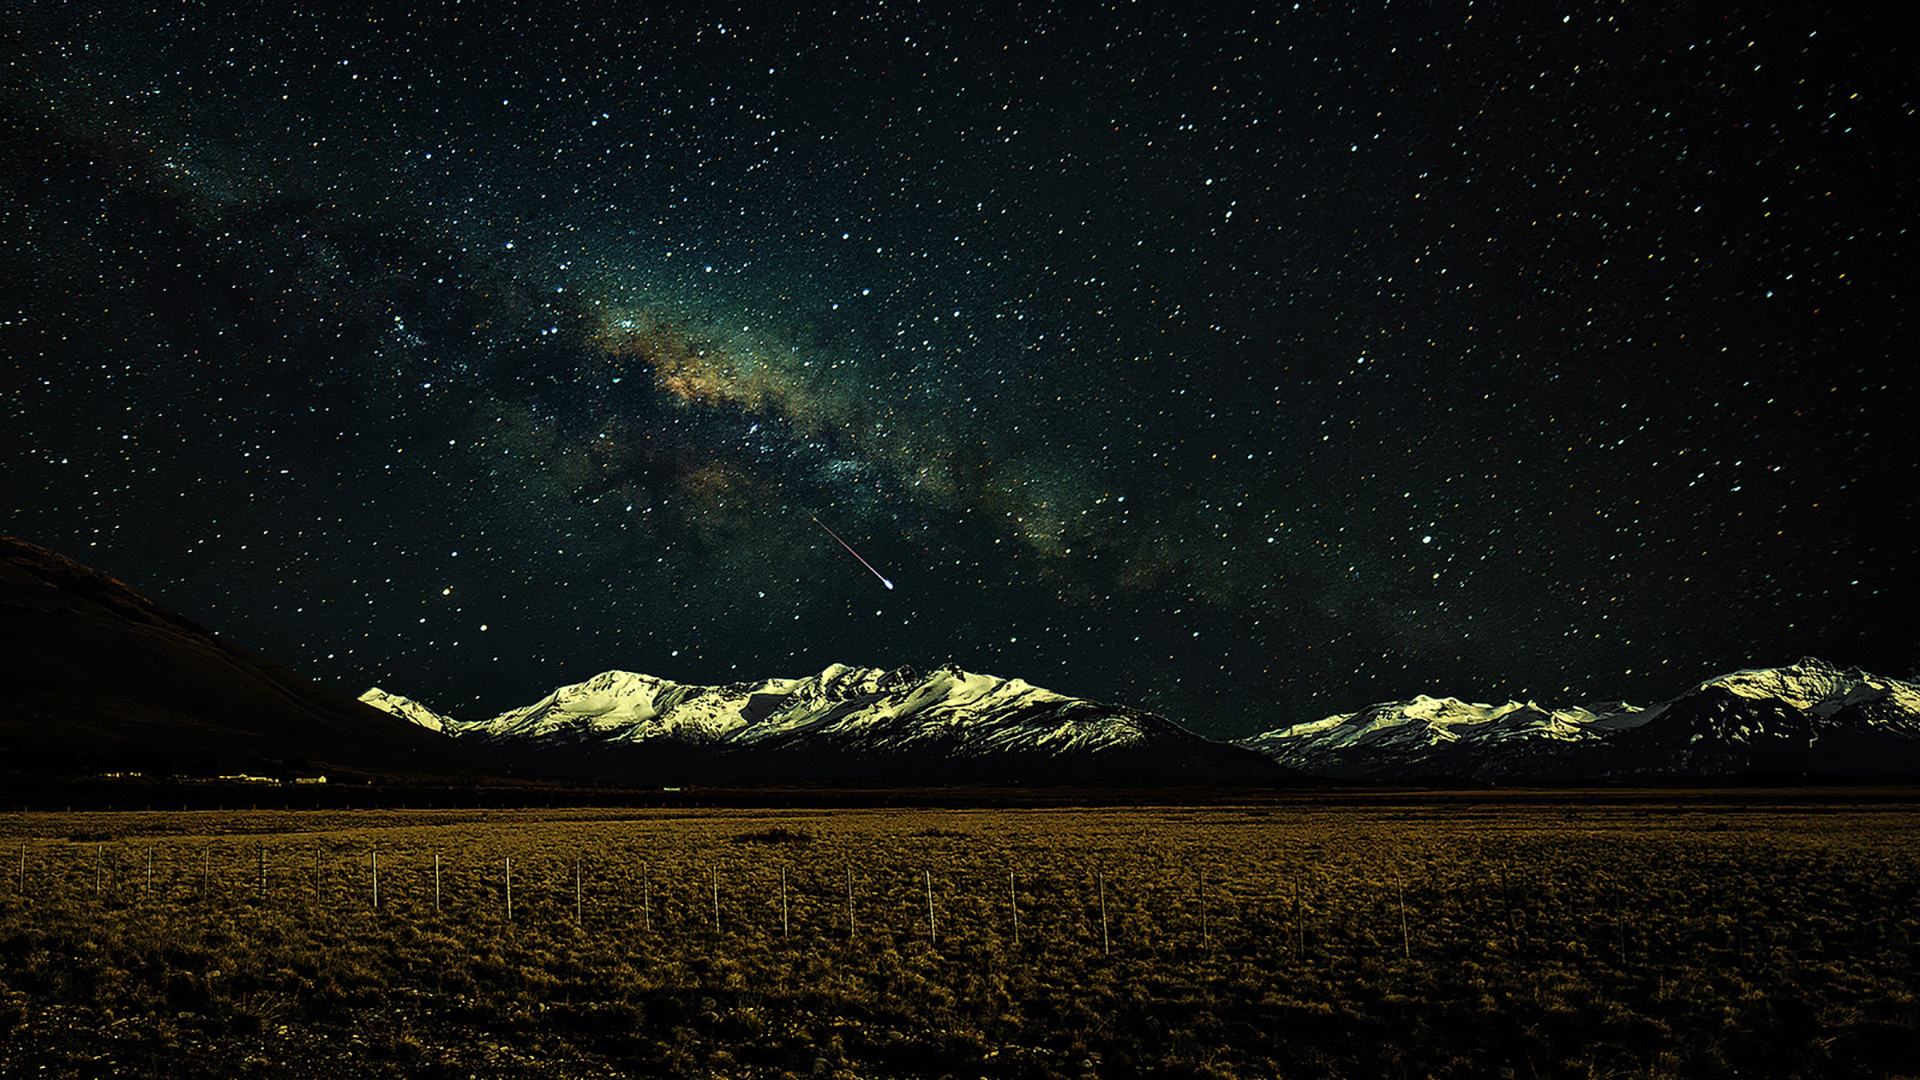 Download-milky-way-space-mountains-fields-fence-snow-stars-mystery-space-resolutio-wallpaper-wpc9004486